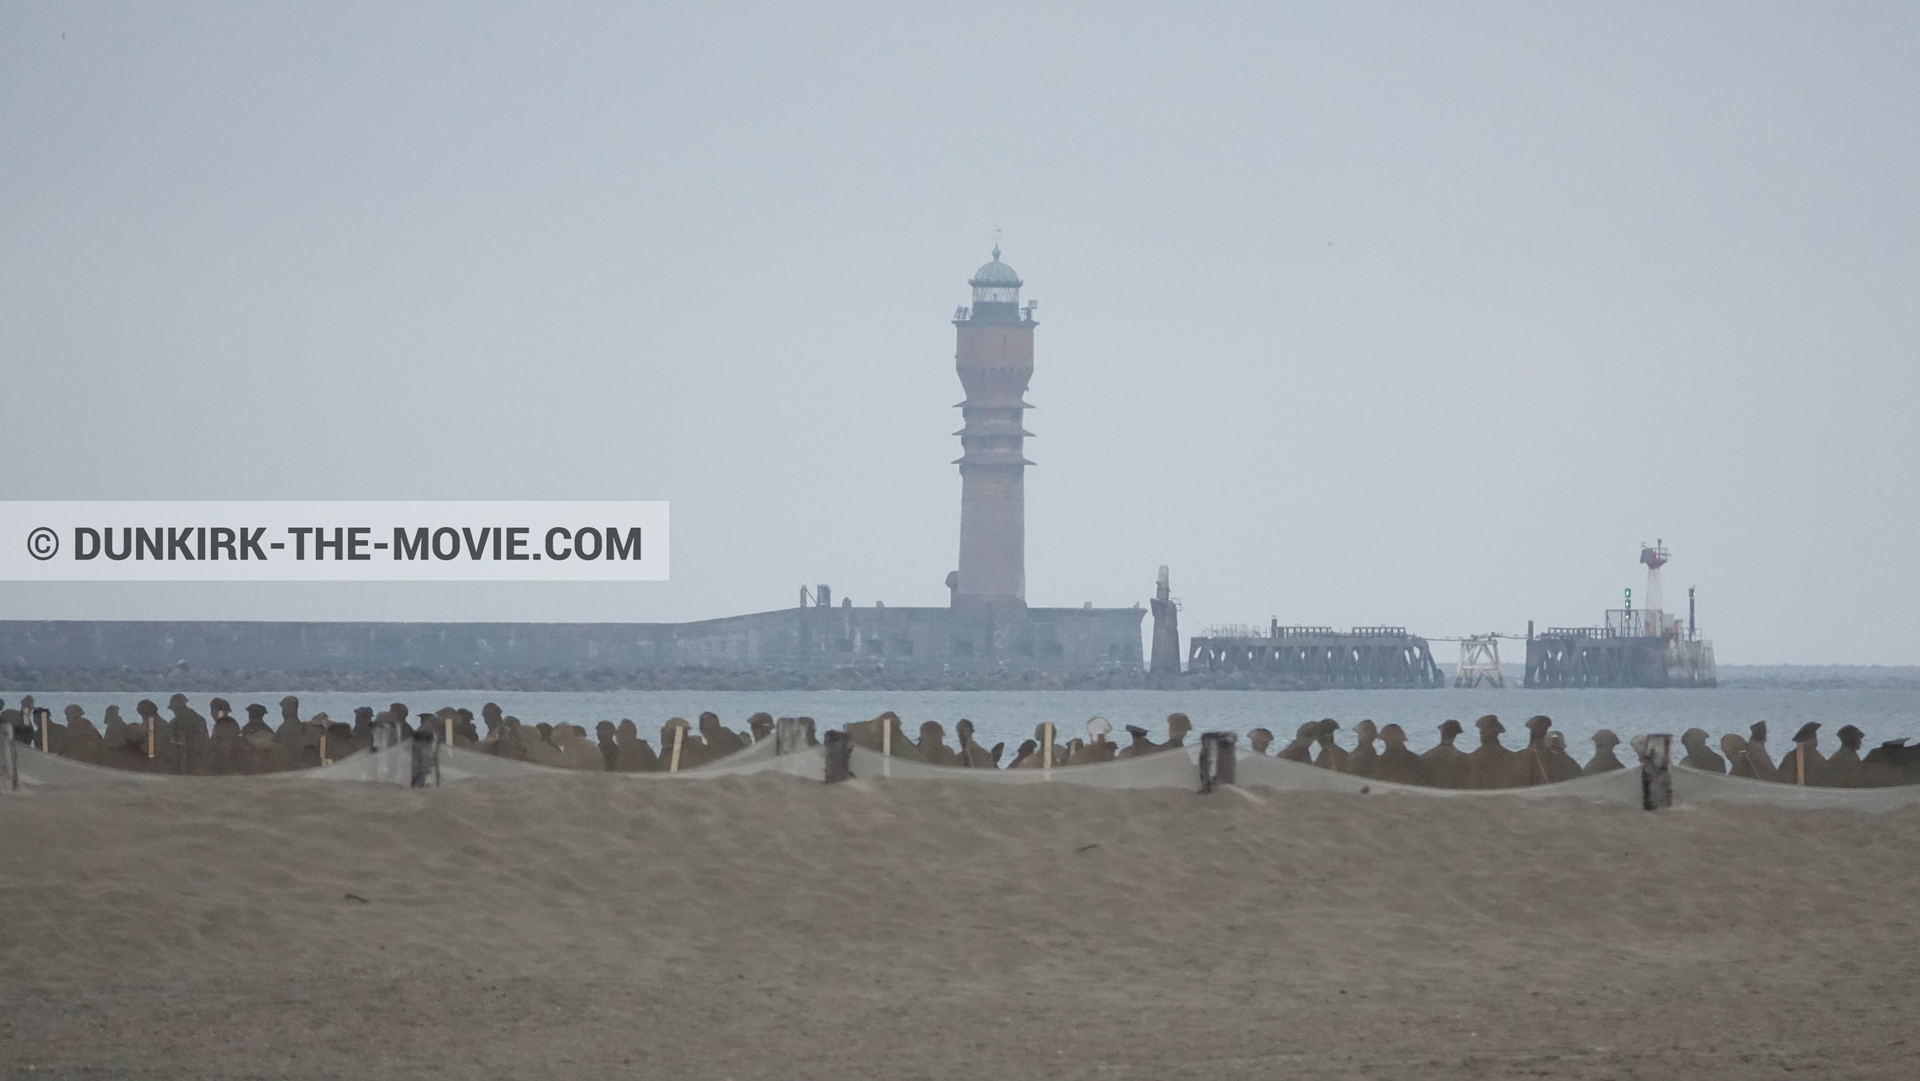 Picture with St Pol sur Mer lighthouse, beach,  from behind the scene of the Dunkirk movie by Nolan